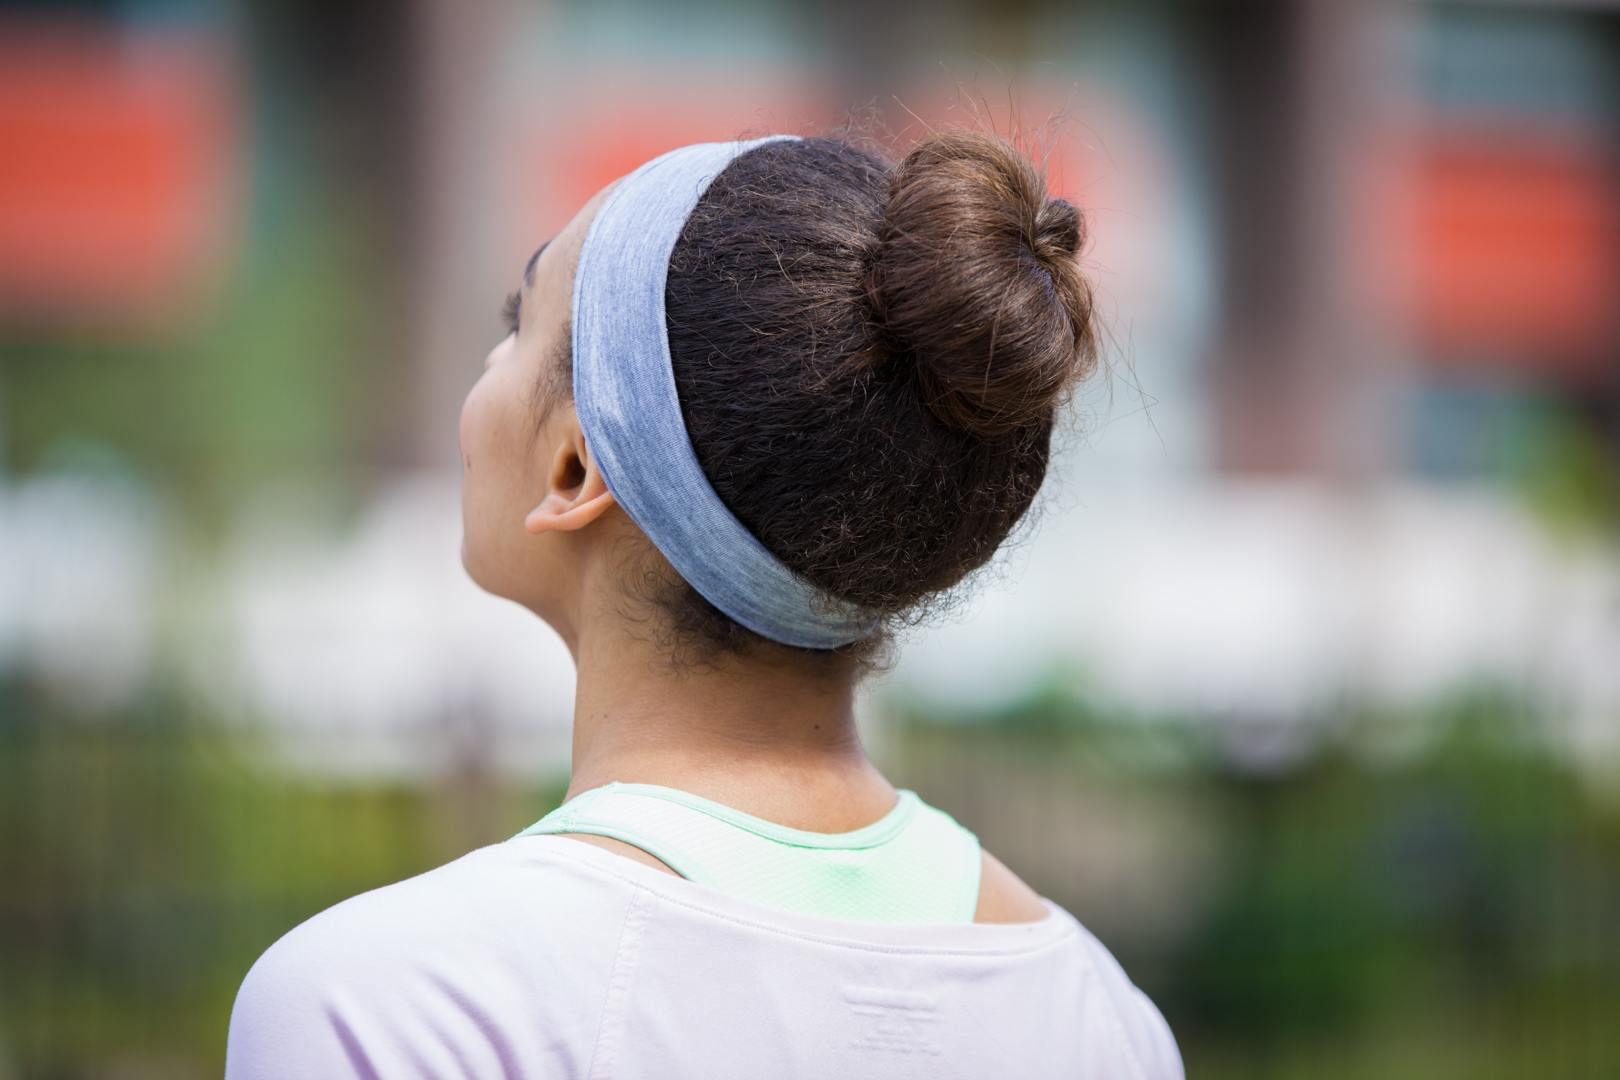 cute sporty hairstyles: close up of woman with natural hair styled into ballerina bun, wearing gym clothing and posing outside